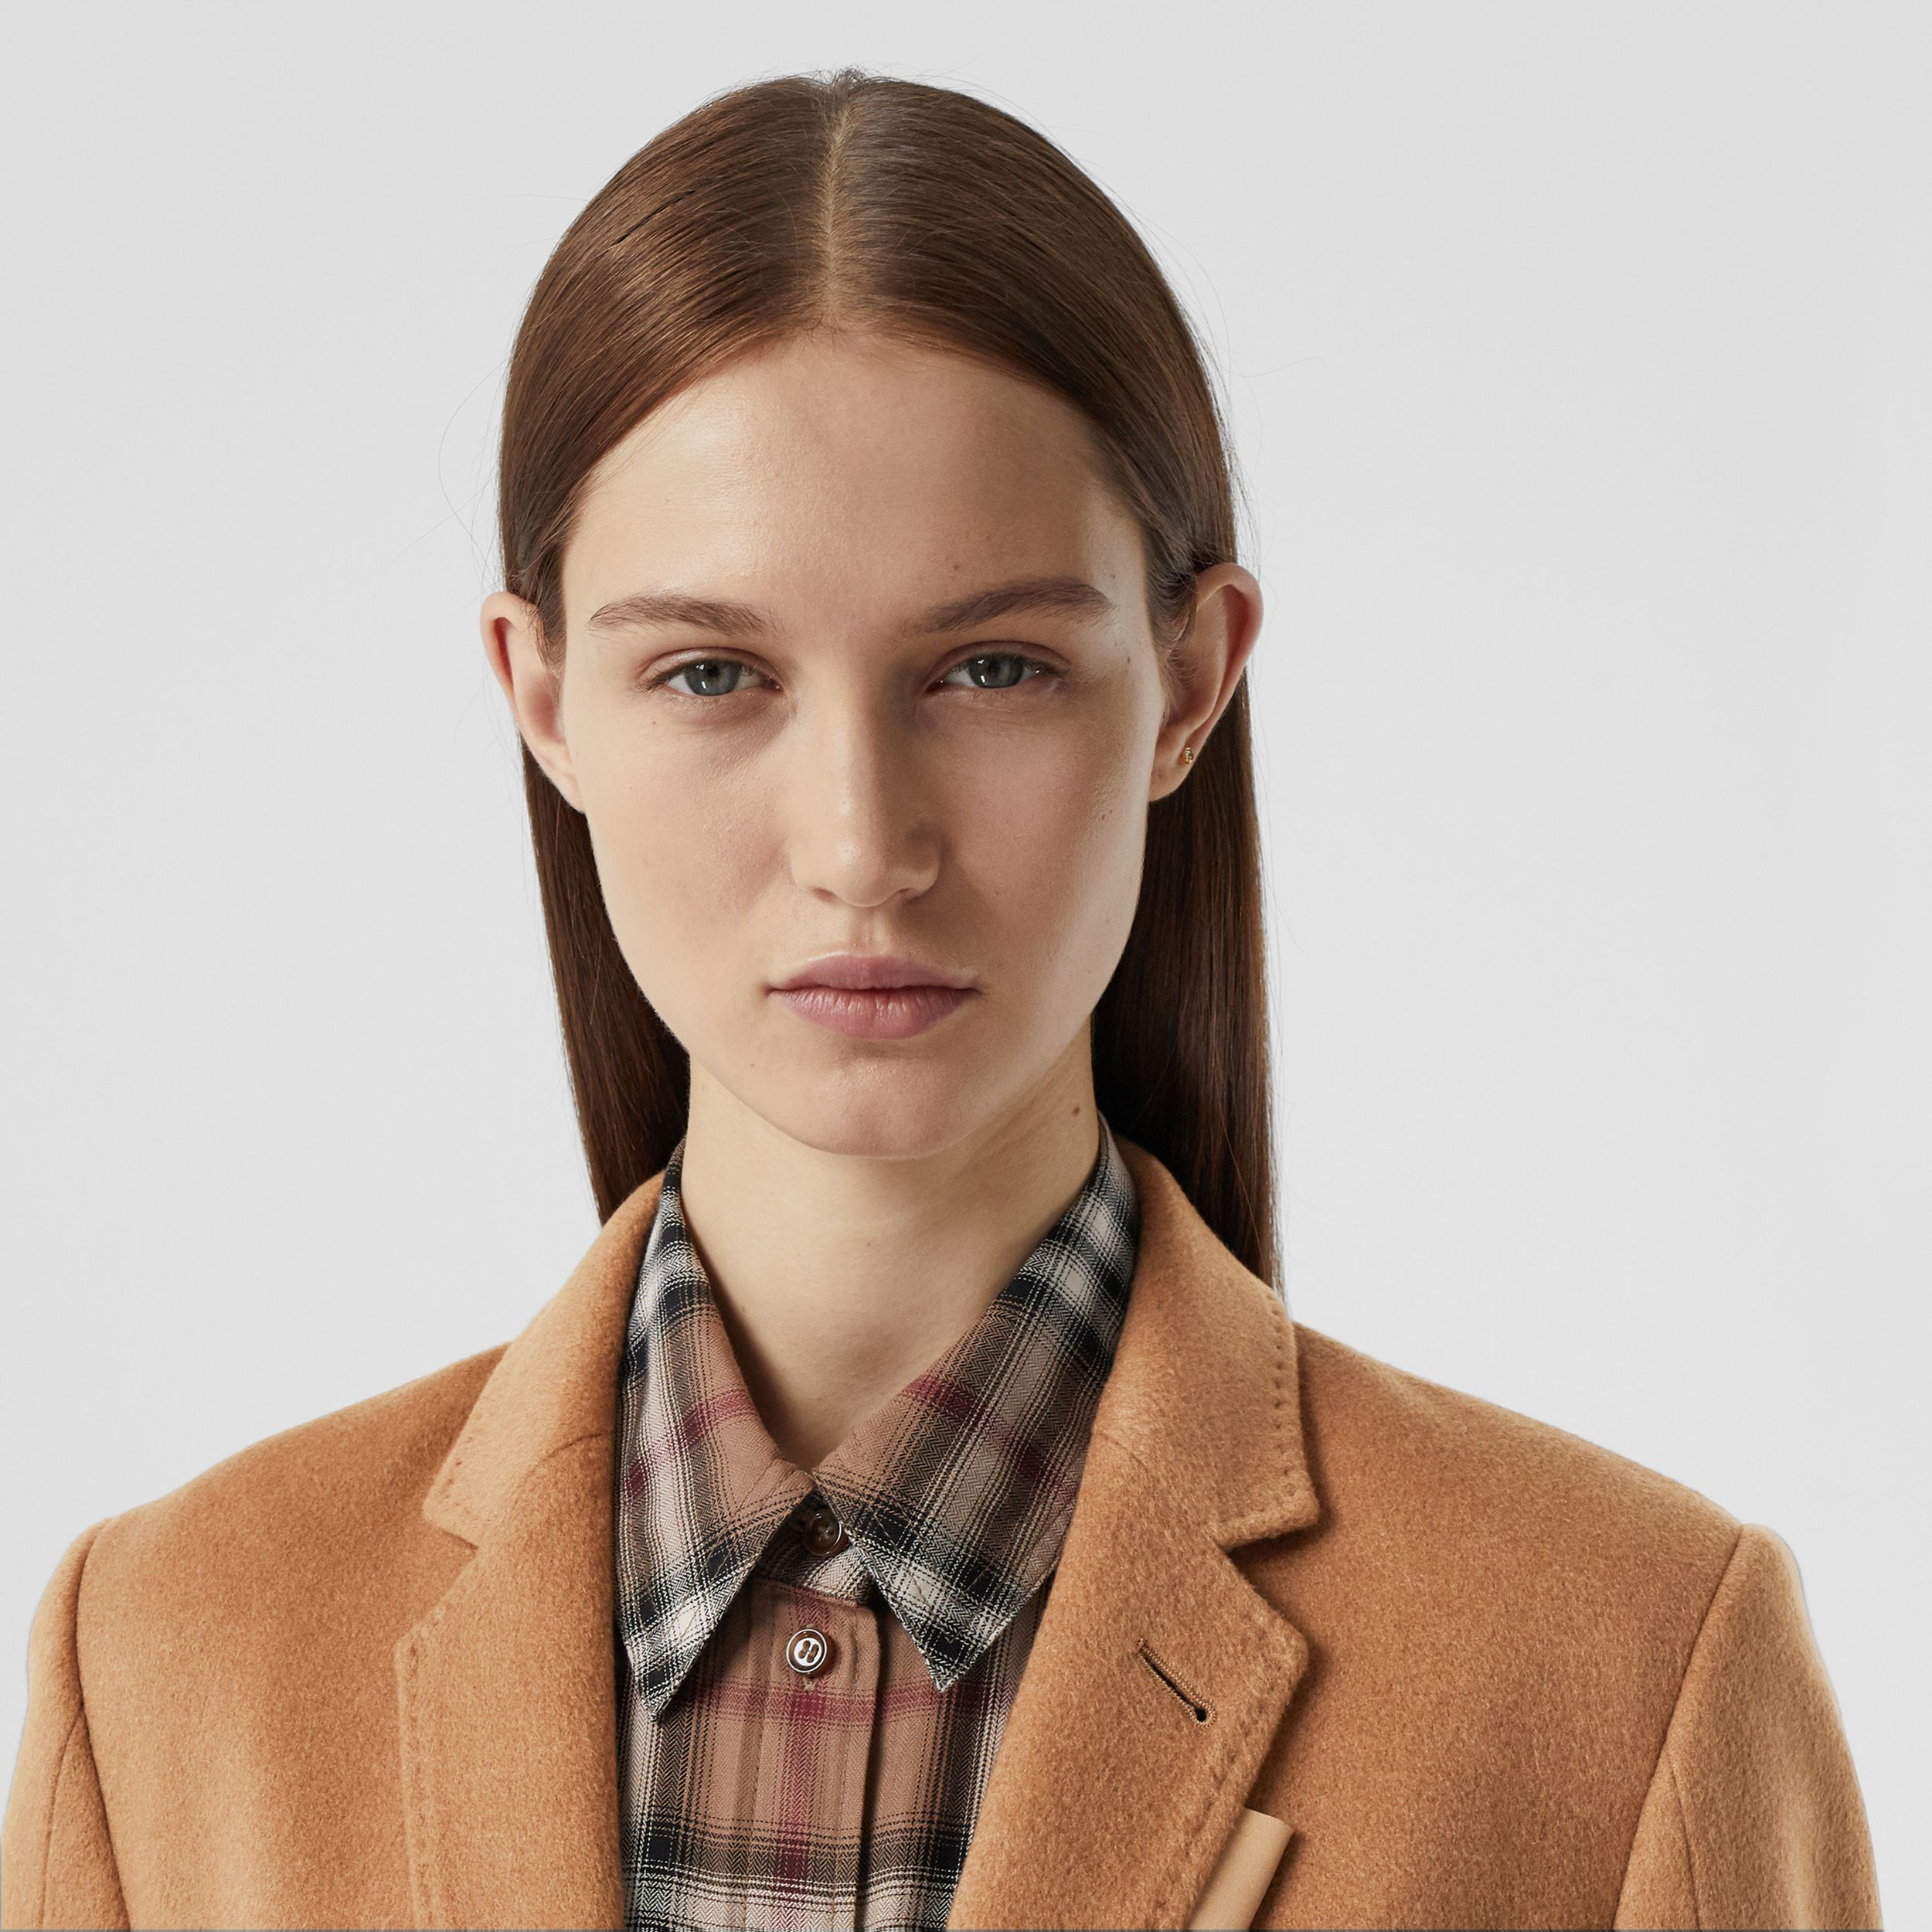 Cashmere Tailored Coat in Bronze - Women | Burberry Australia - 2